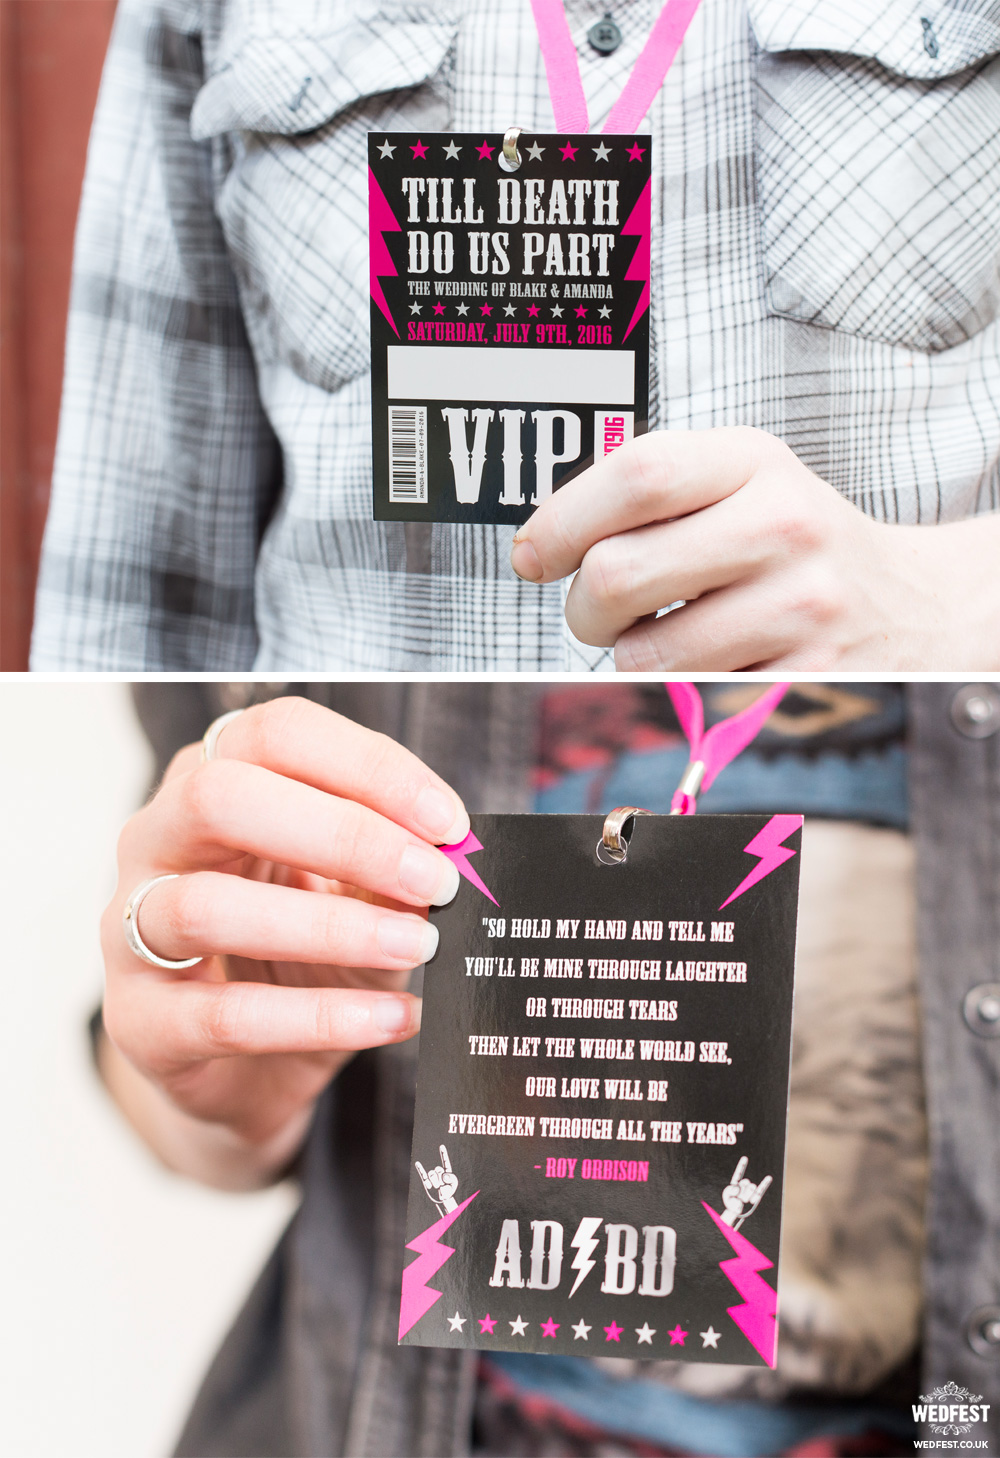 till death do us part wedding vip pass